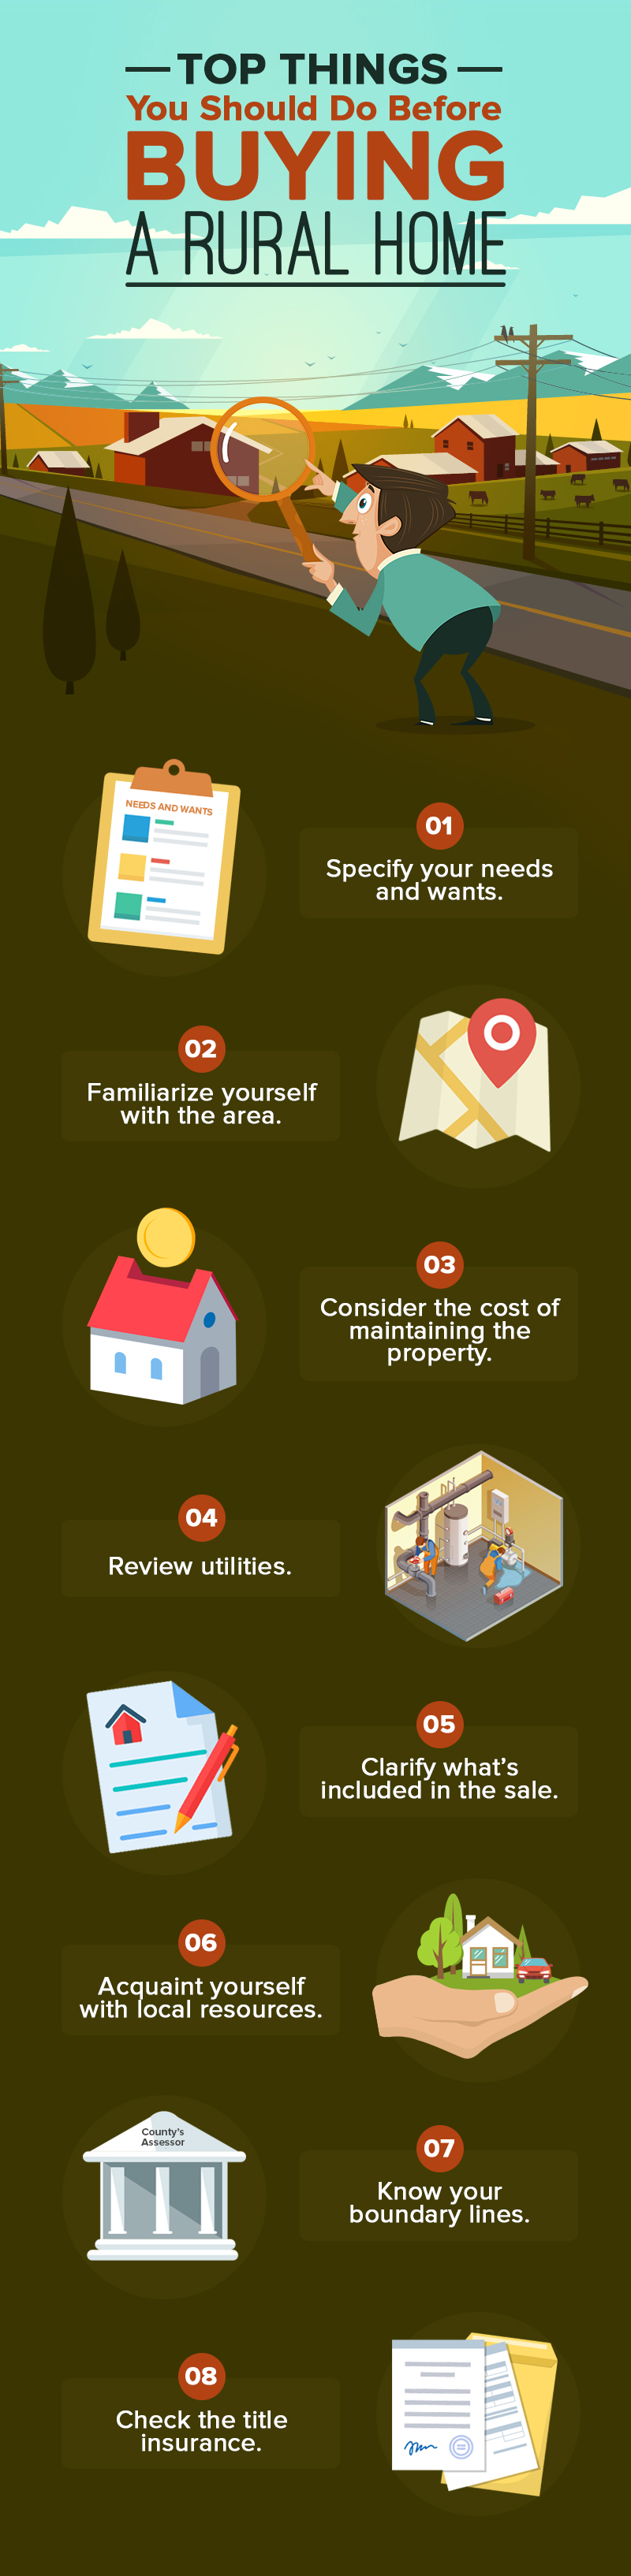 Top Things You Should Do Before Buying A Rural Home